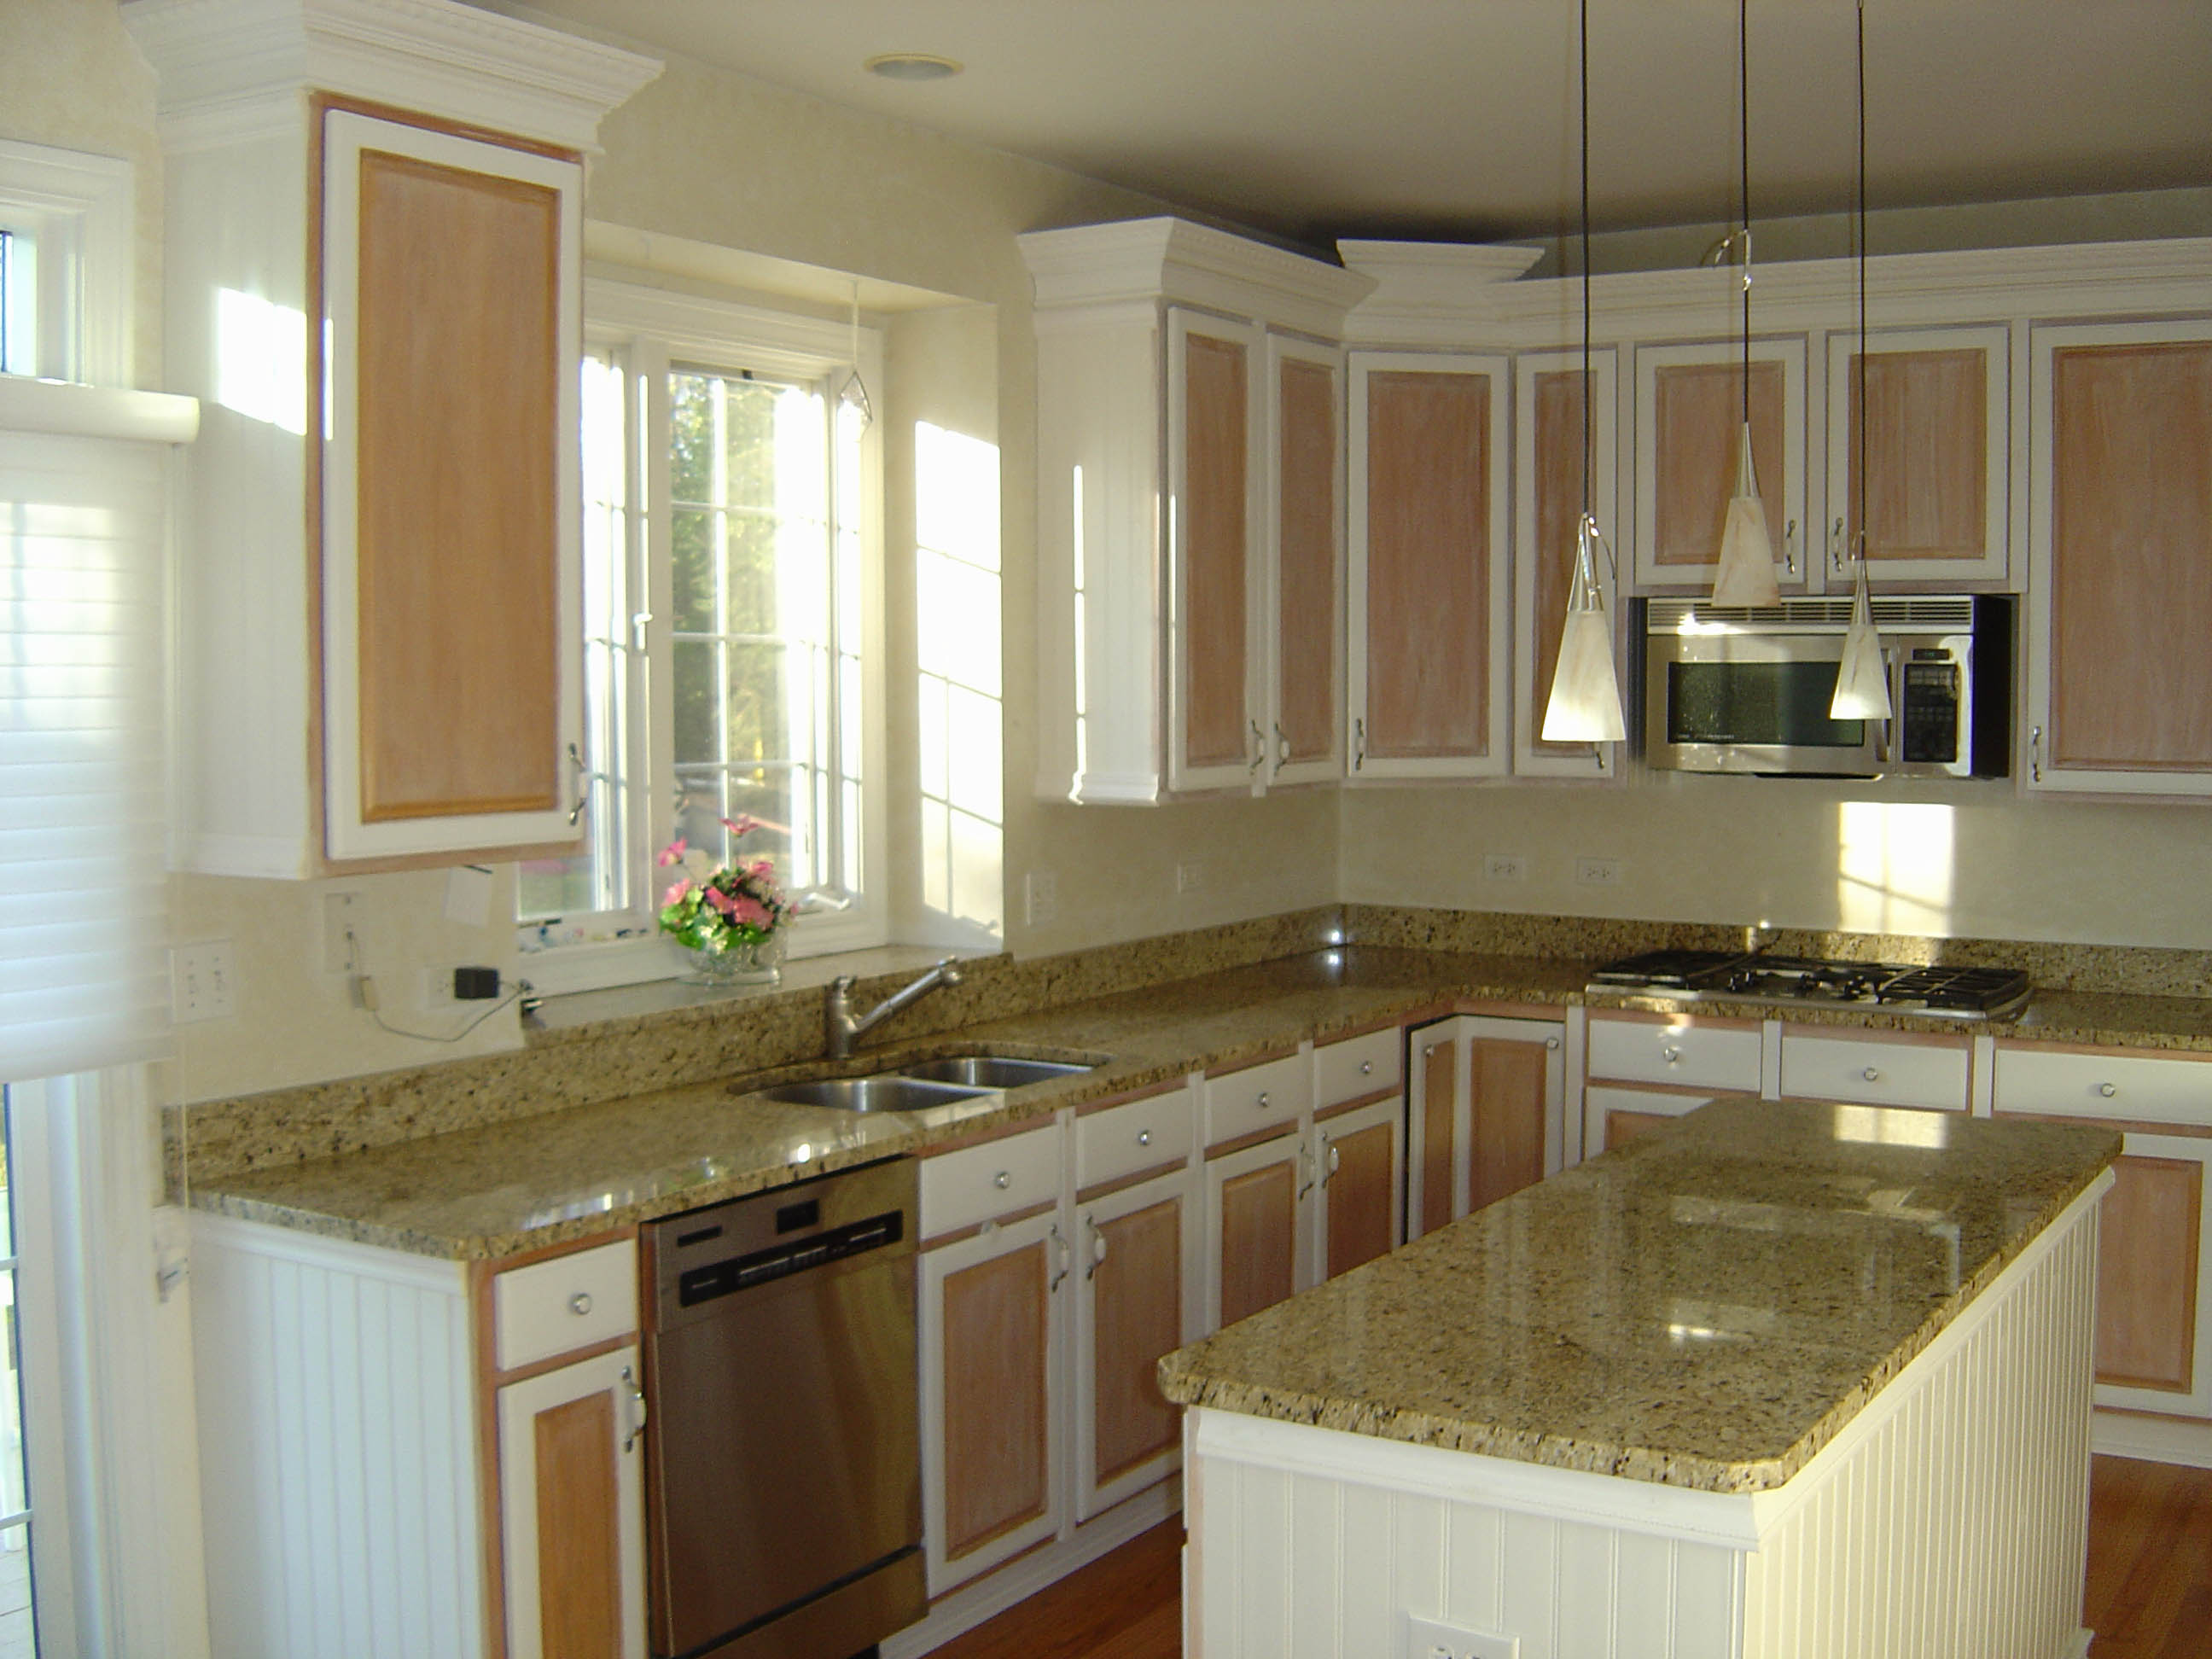 How Much Does Cabinet Refacing Cost? - Affordable Cabinet Refacing ...